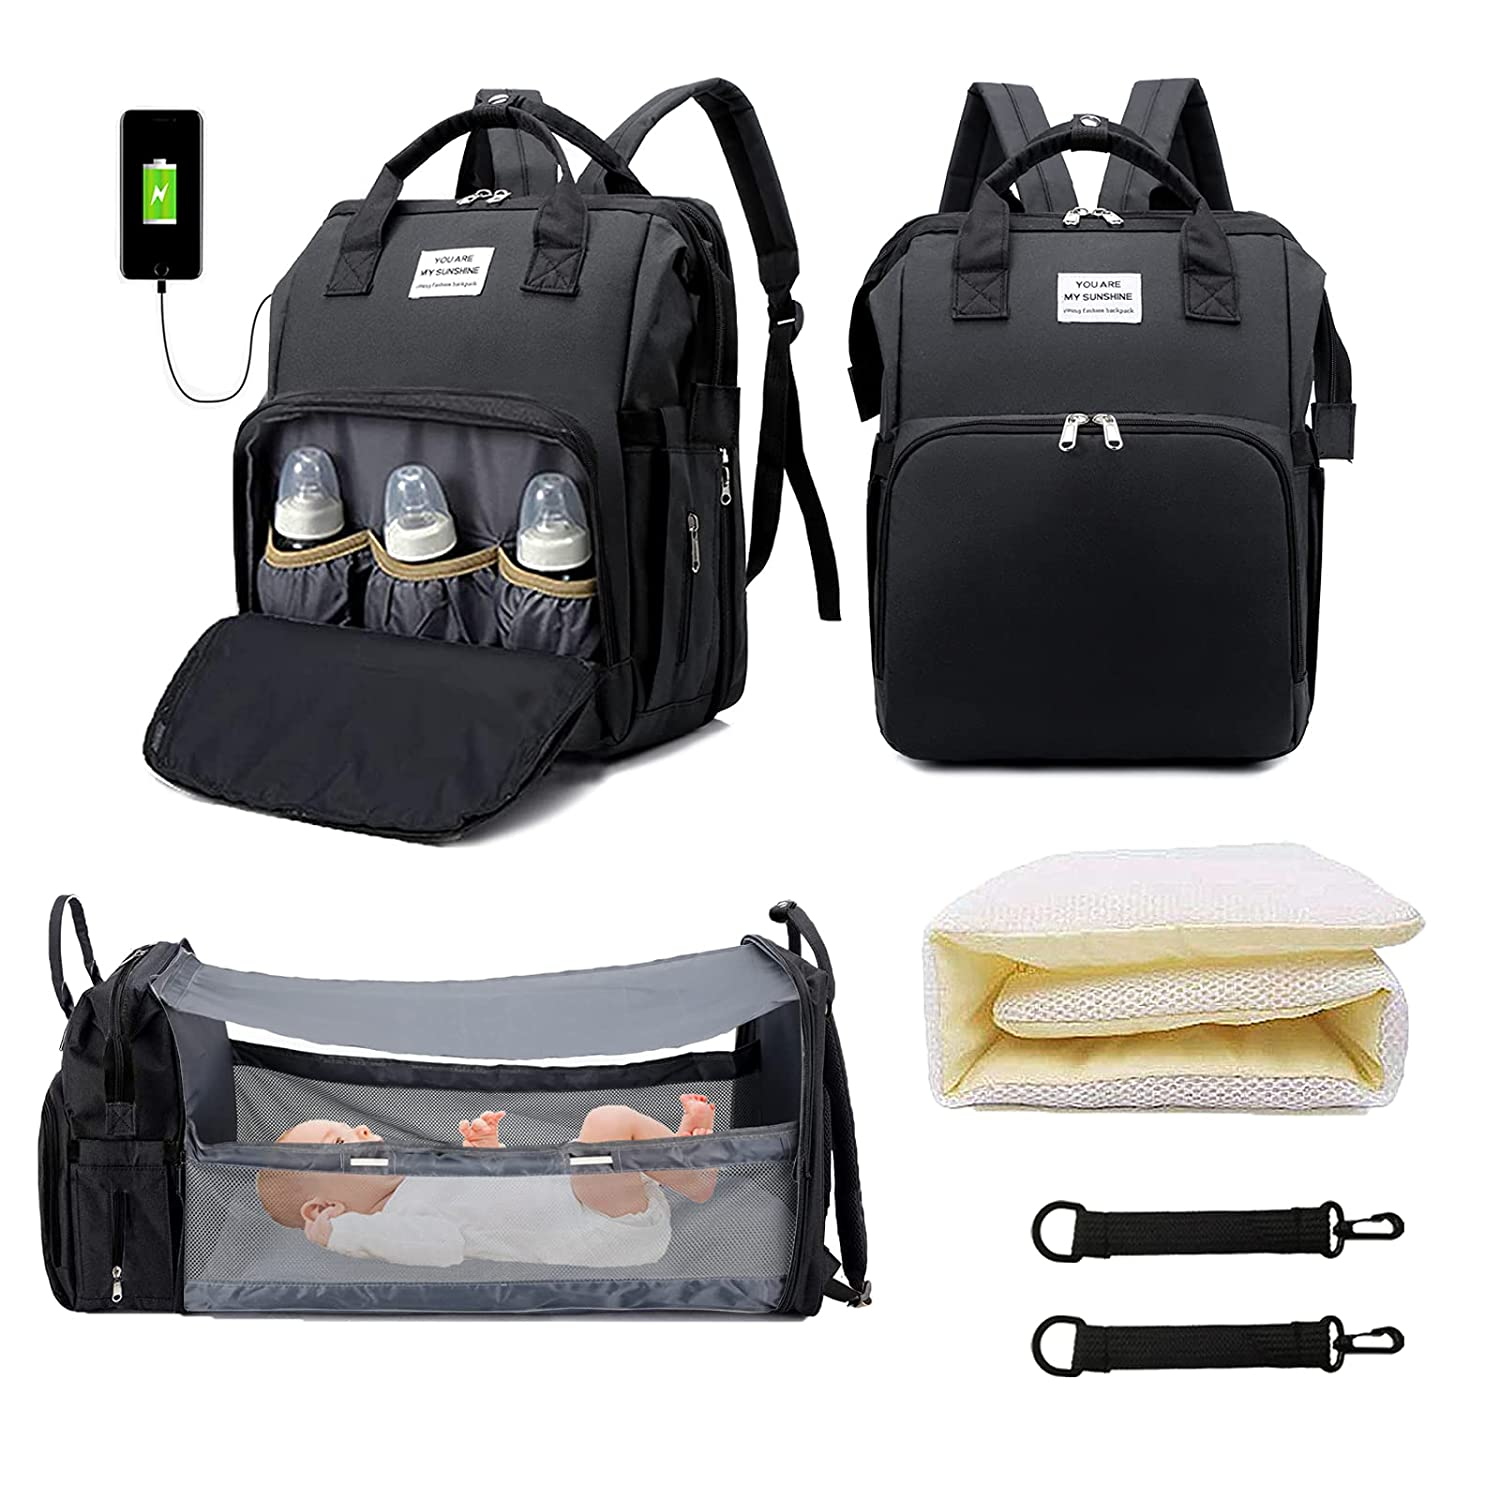 KEEPAA Baby Diaper Bag Backpack 3 in 1, Diaper Bag for Boys Girls, Portable Multifunction Waterproof Travel Back Pack with Stroller Hook, Large Capacity Travel Bags for Organizer